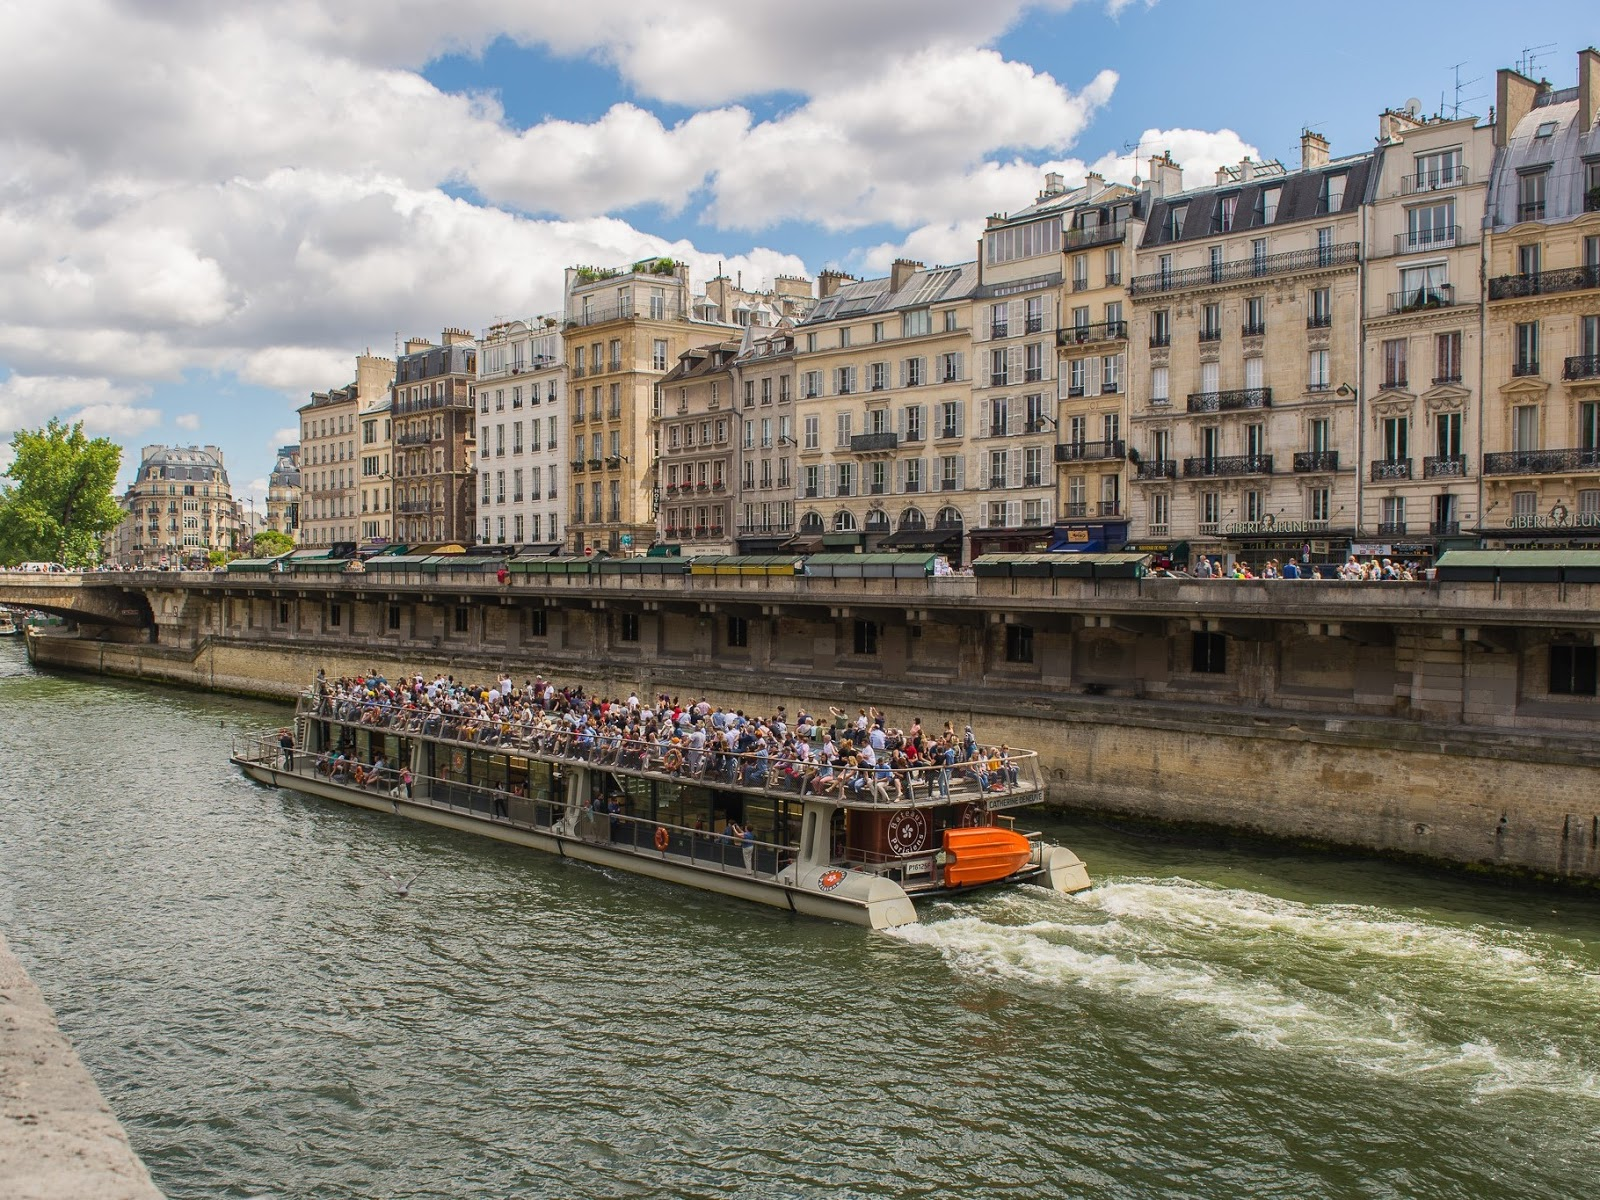 The view from the Paris Bridge